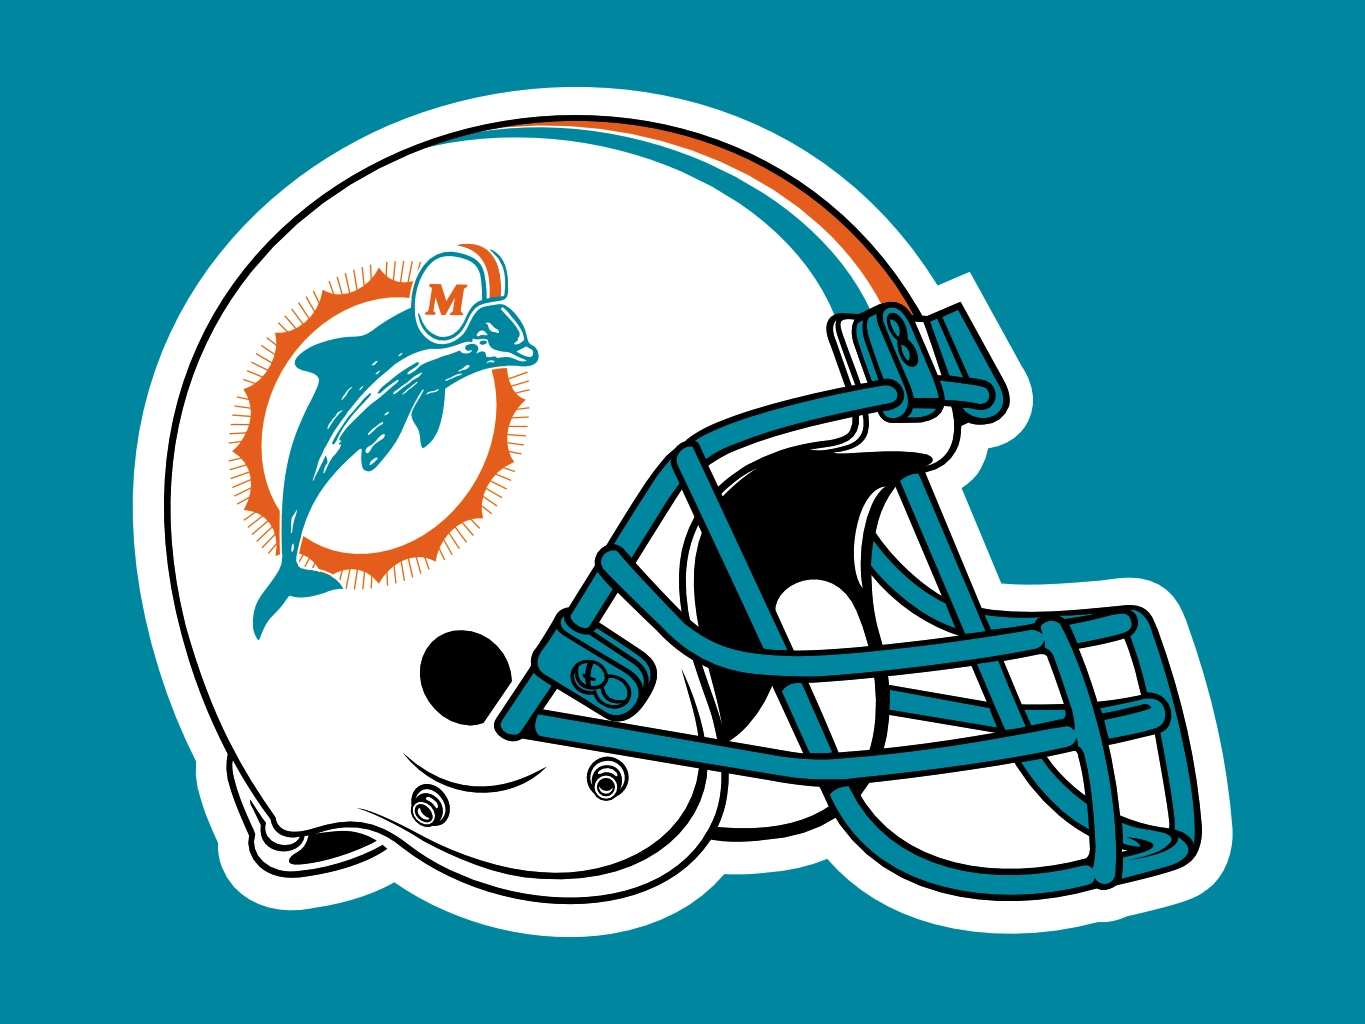 Miami Dolphins Wallpaper 2012 For Desktop 1365x1024